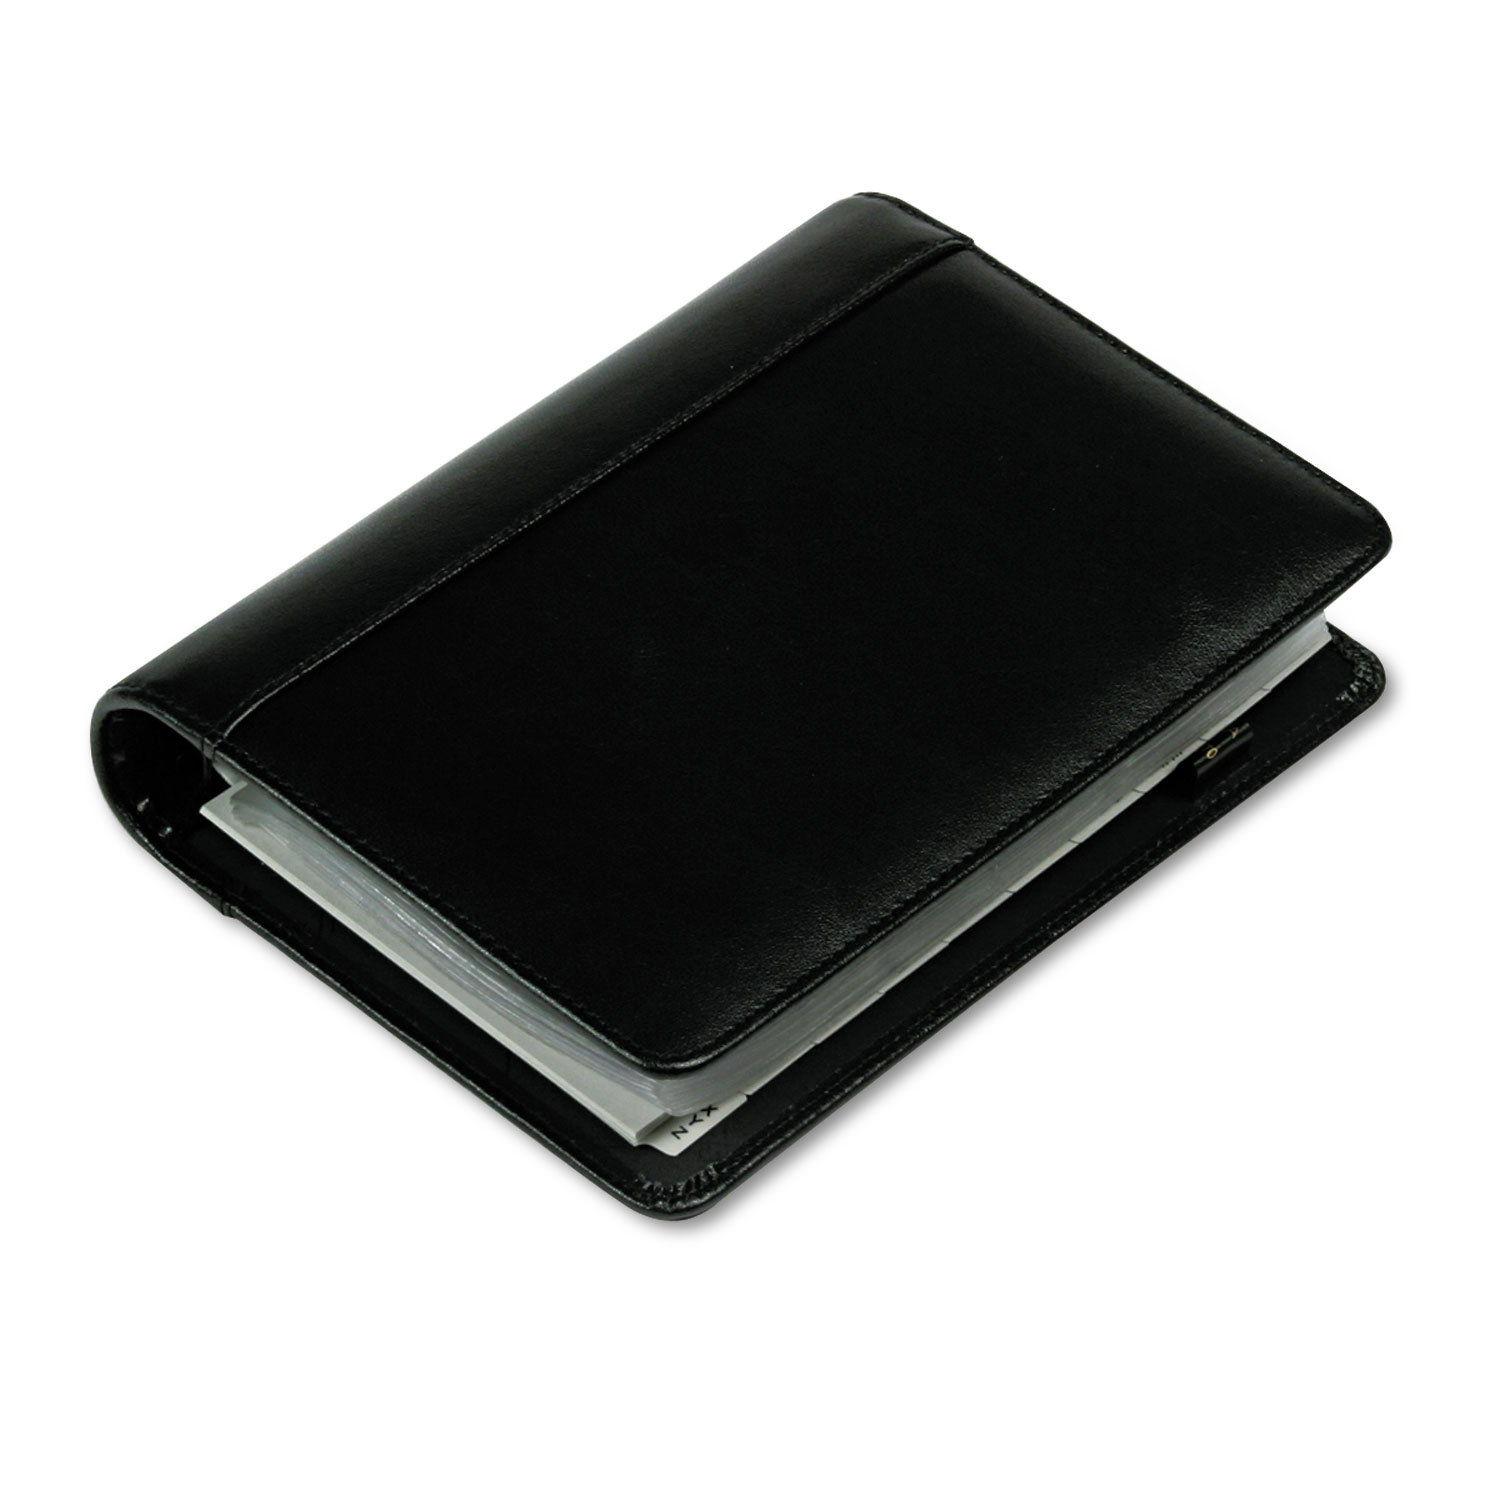 Regal leather business card binder by samsill sam81270 sam81270 thumbnail 1 sam81270 thumbnail 2 colourmoves